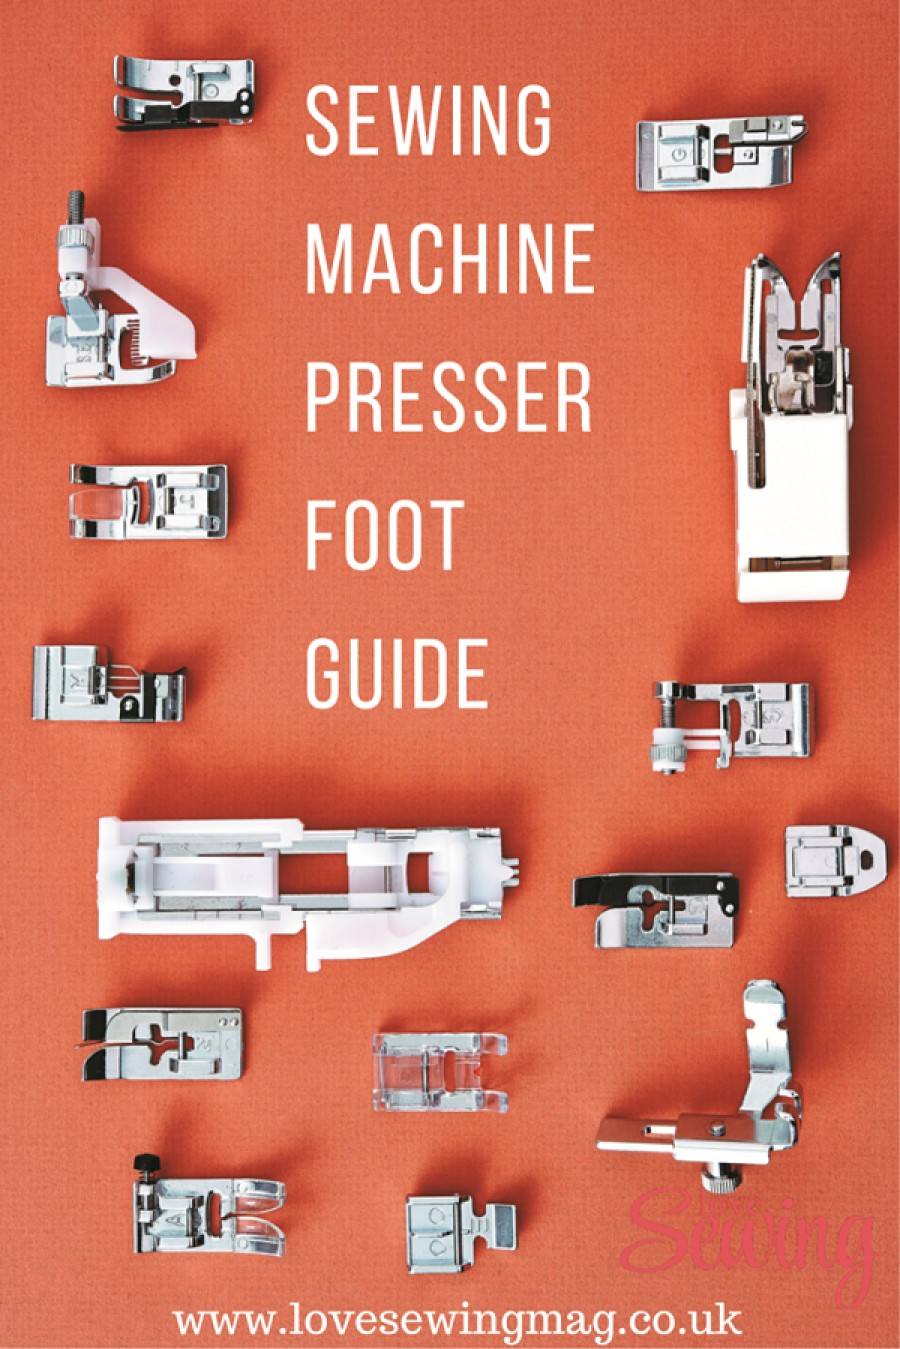 Sewing Machine Presser Foot Guide for Beginners